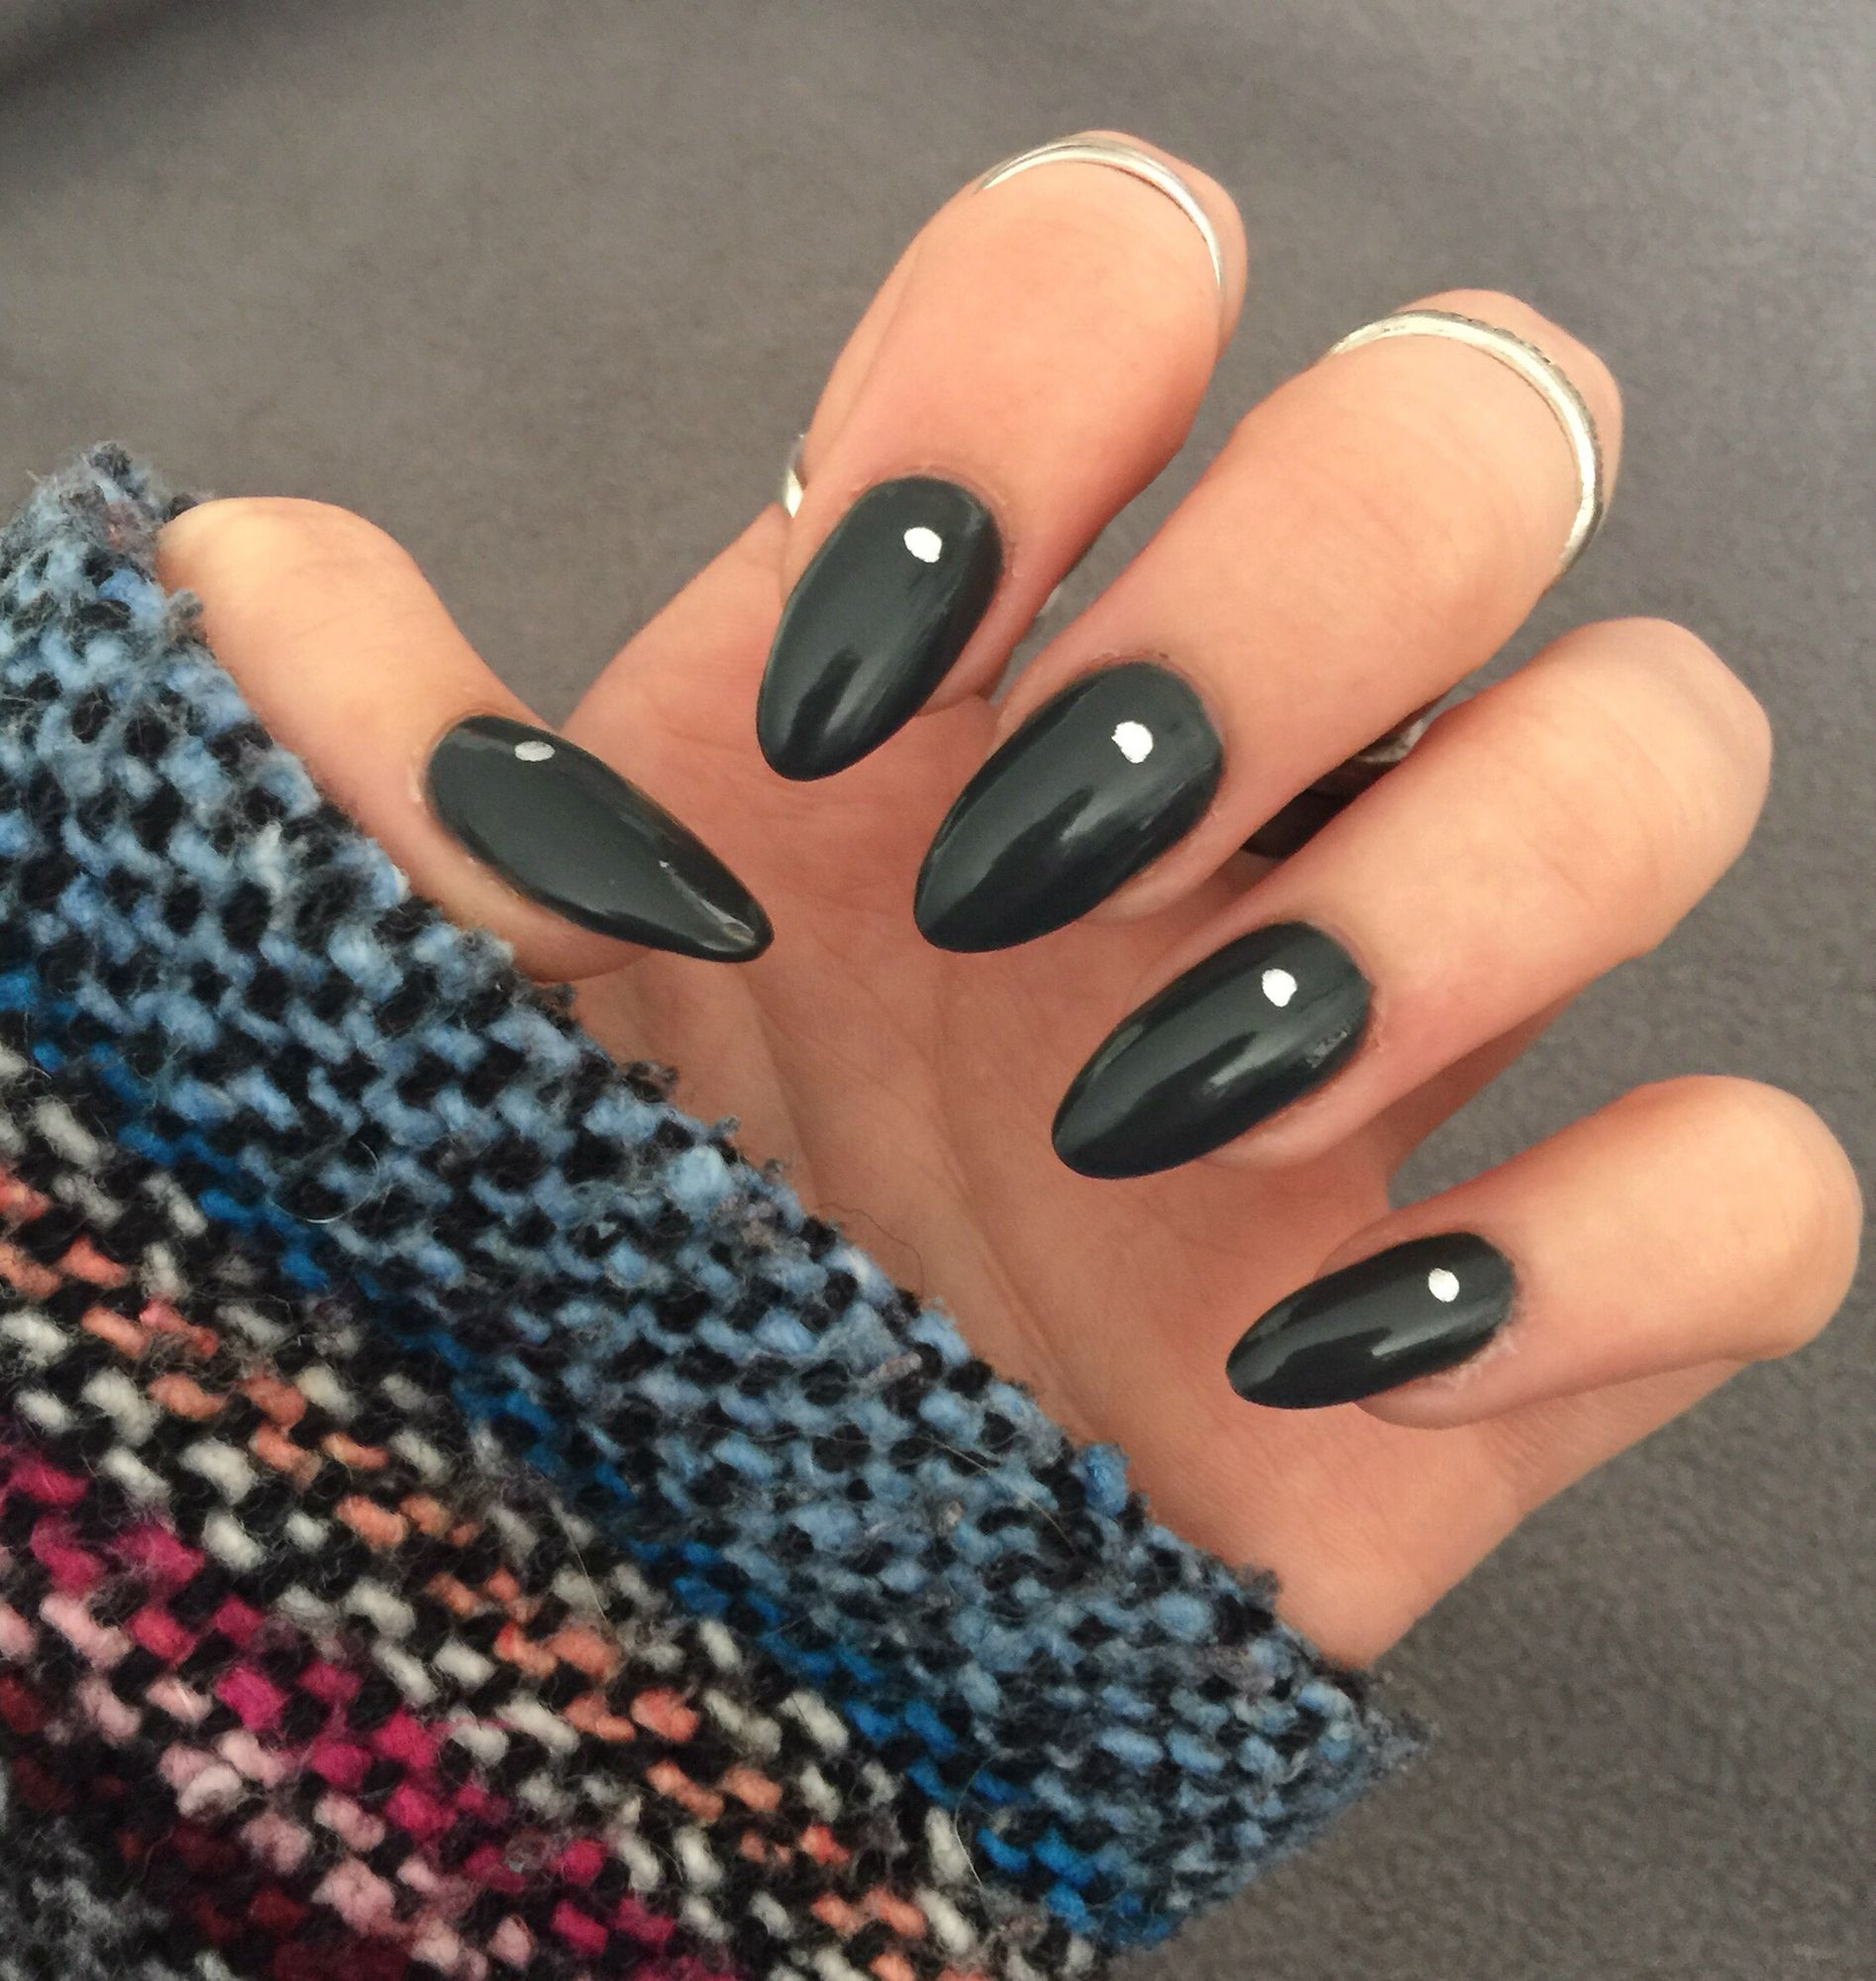 Long Dark Gray Almond Shaped Nails With Silver Dot Design Super Easy And Cute Follow Me At Je Almond Nails Designs Almond Acrylic Nails Almond Shape Nails